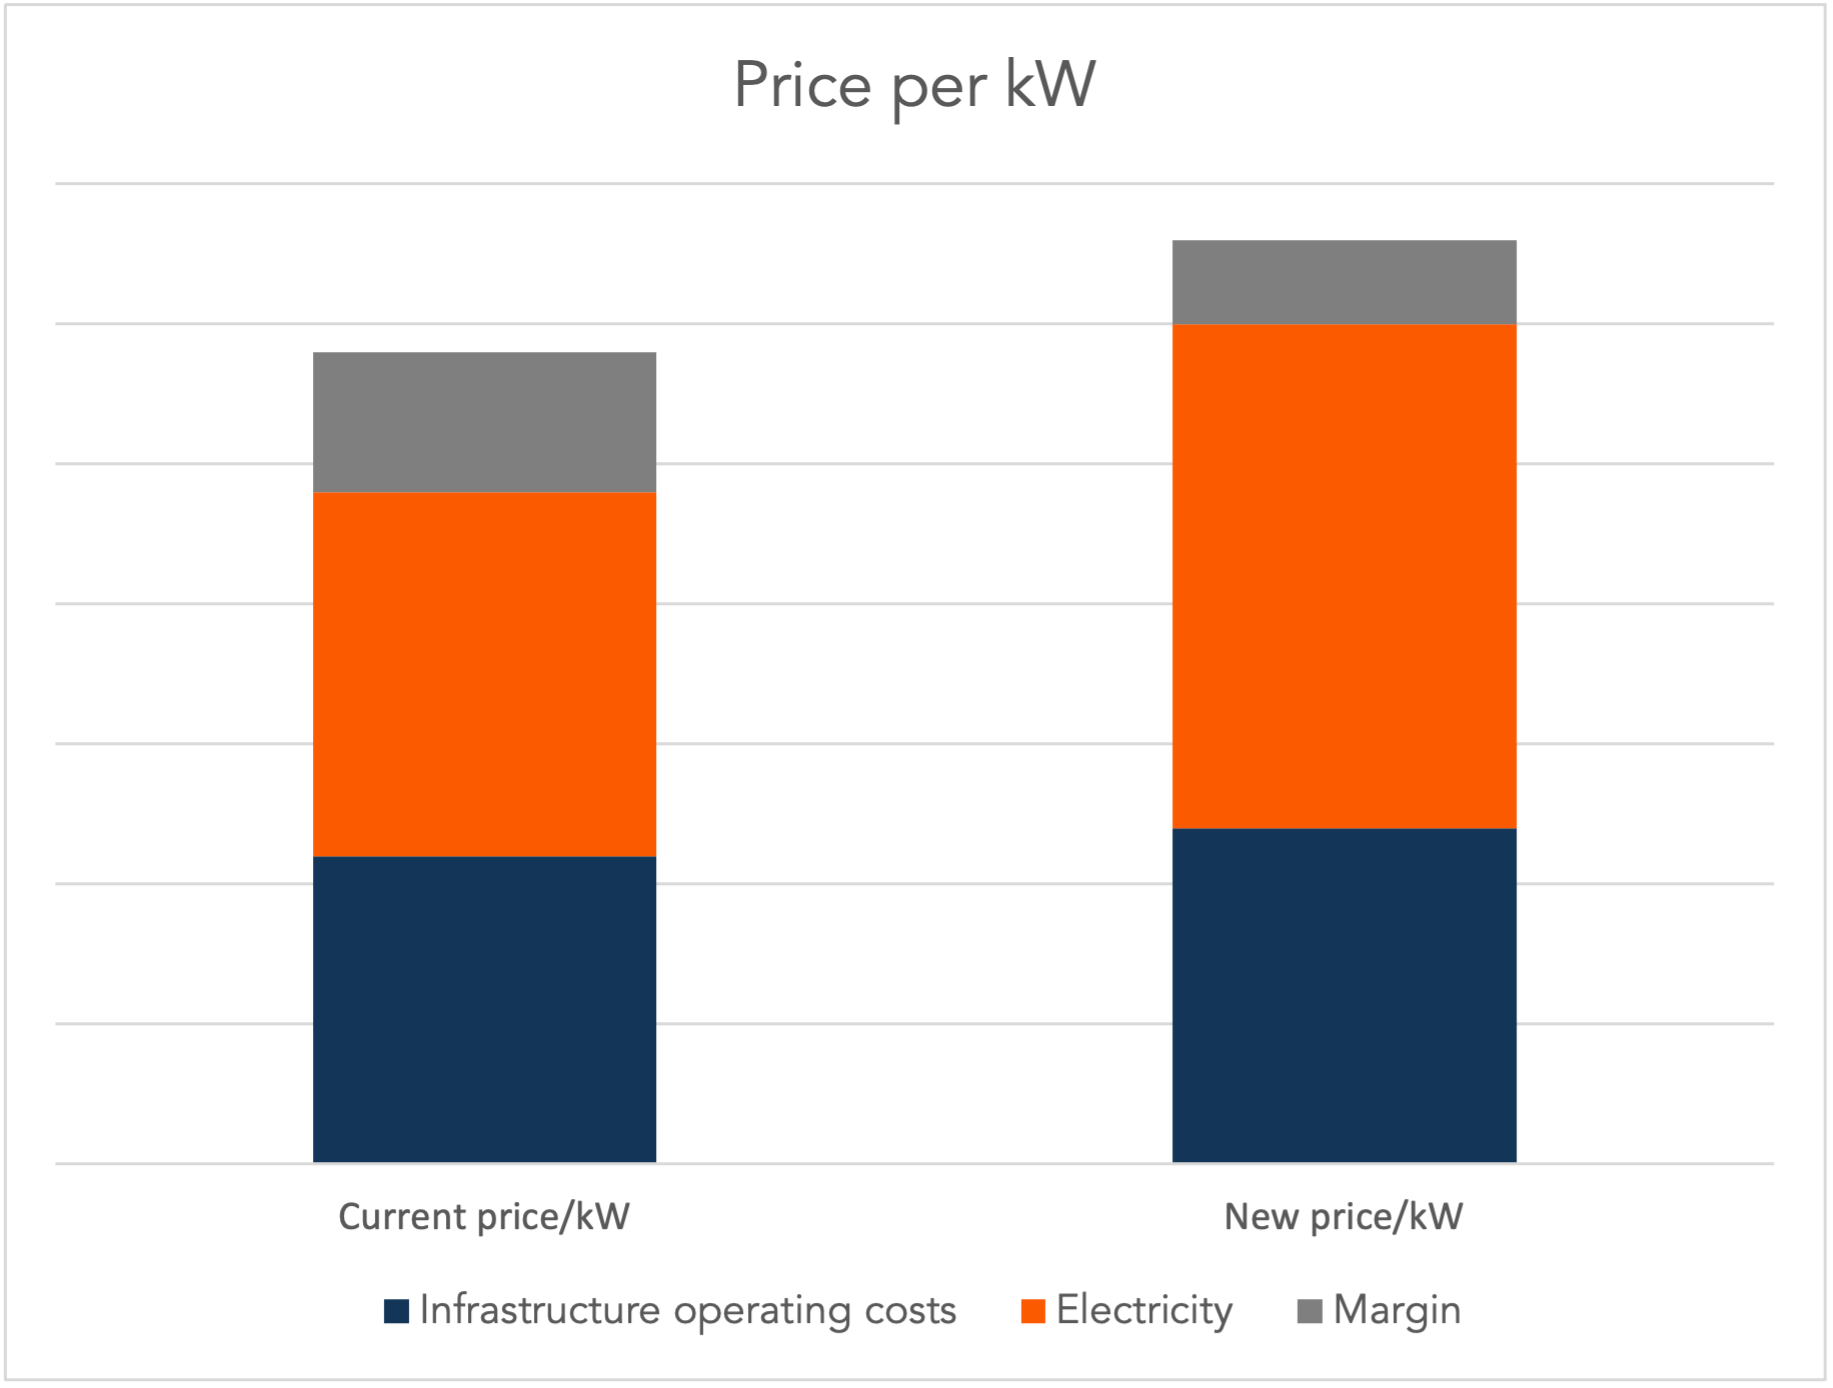 Breakdown of current and new price per kWh